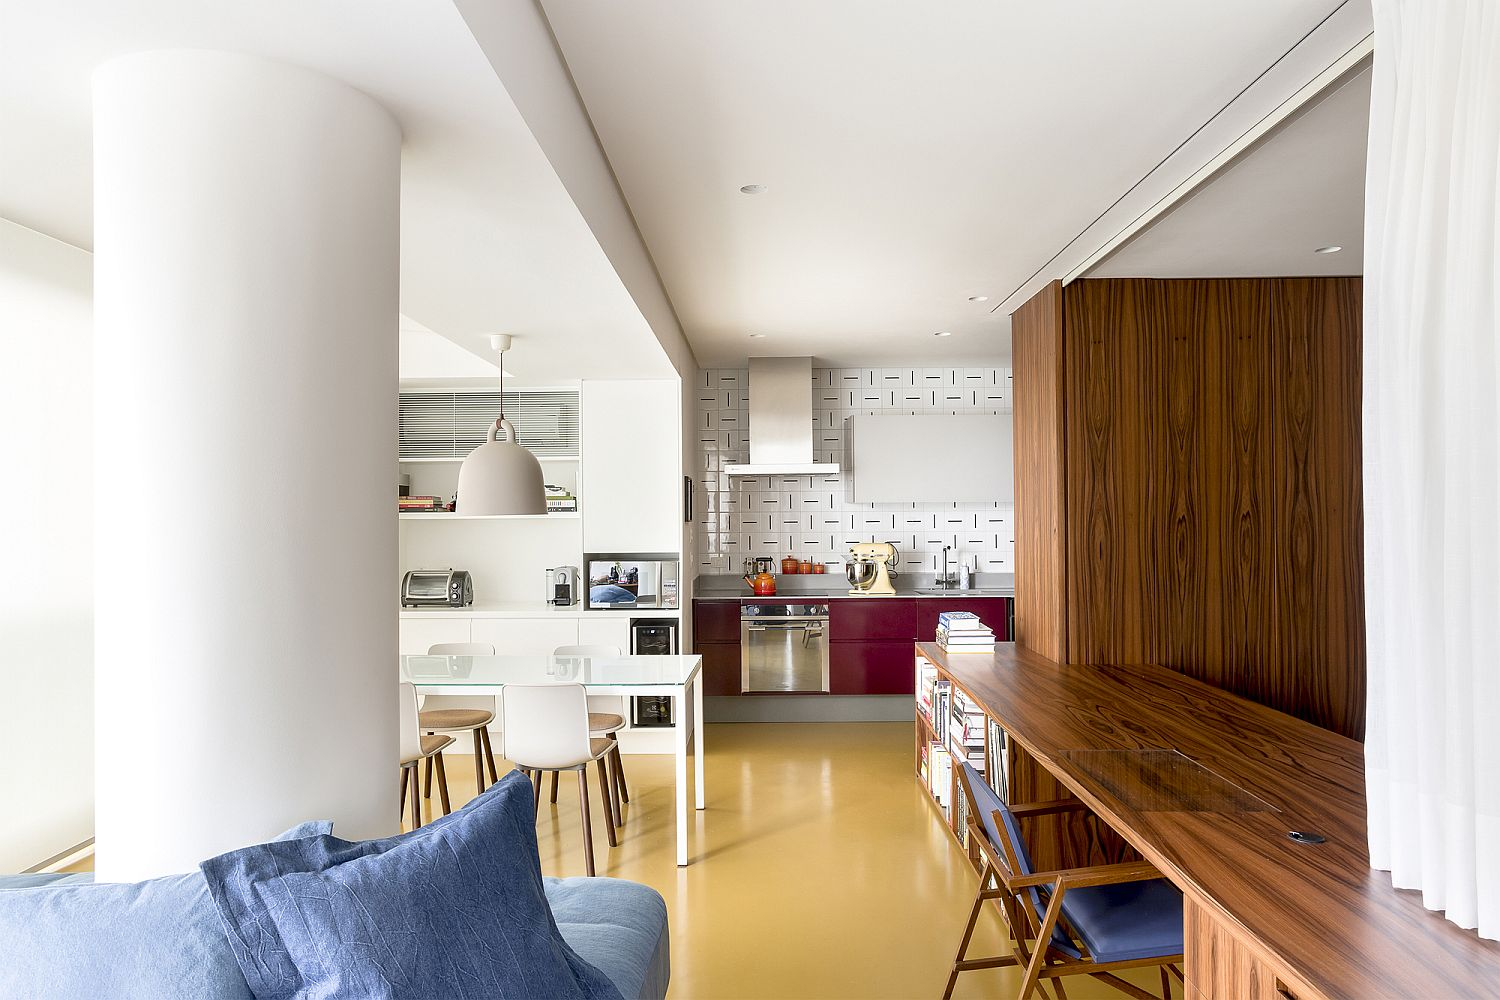 Space-savvy and innovative apartment in Sao Paulo